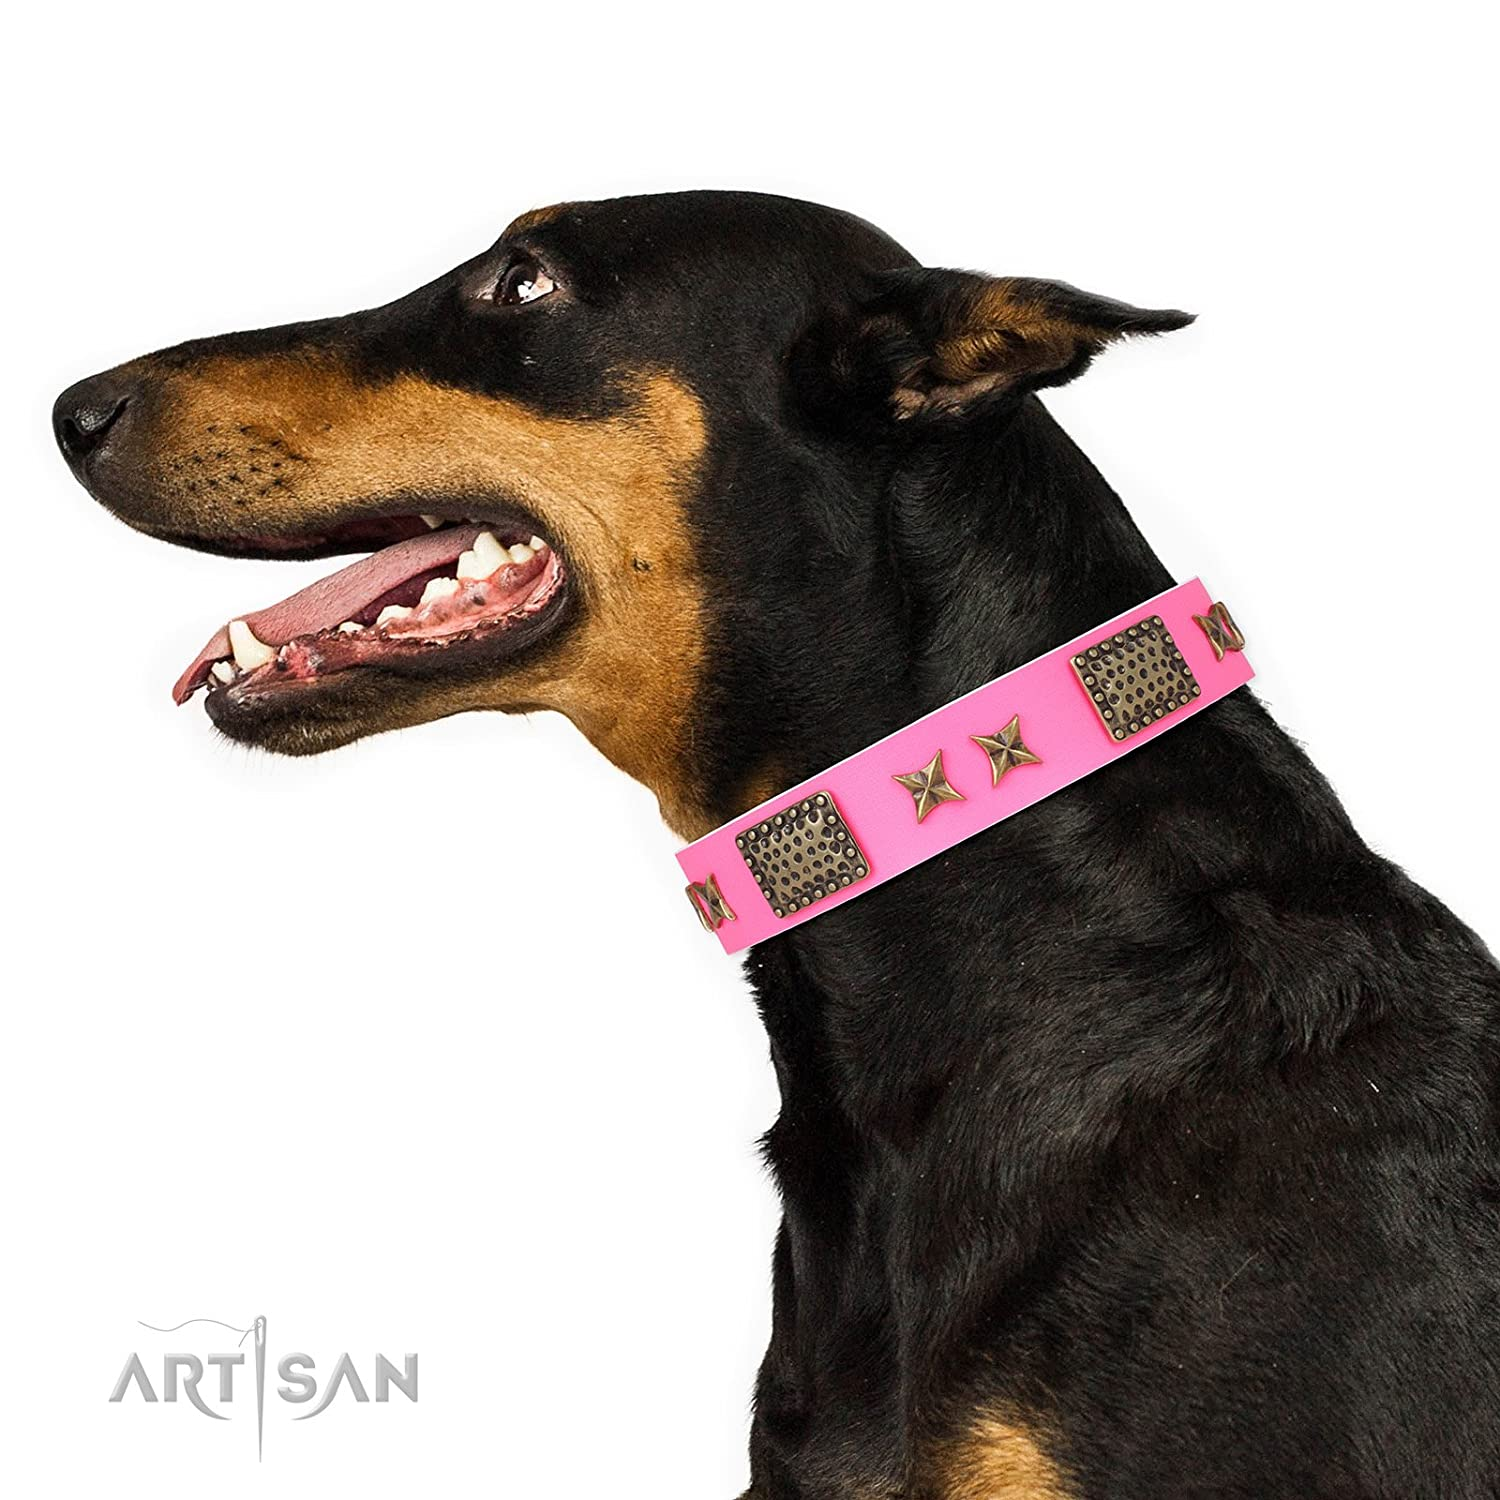 Fits for 22 inch (55cm) dog's neck size FDT Artisan 22 inch Pink Leather Dog Collar  Old Bronze Style  1 1 2 inch (40 mm) wide